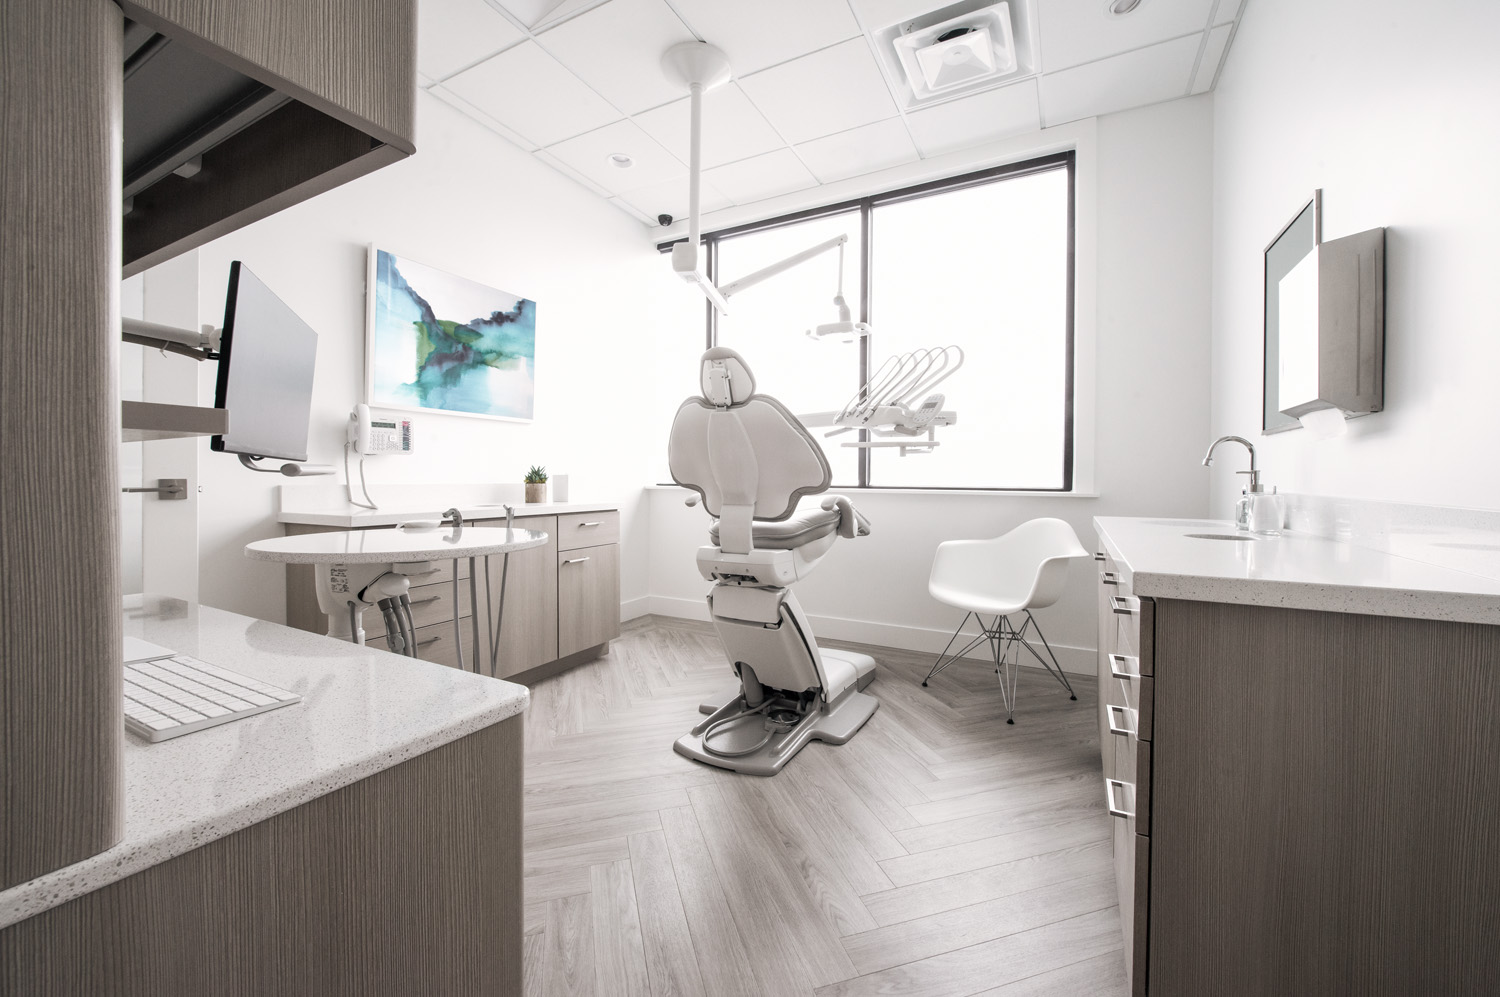 The exam rooms at the Smile Studio are now very different than how they started -